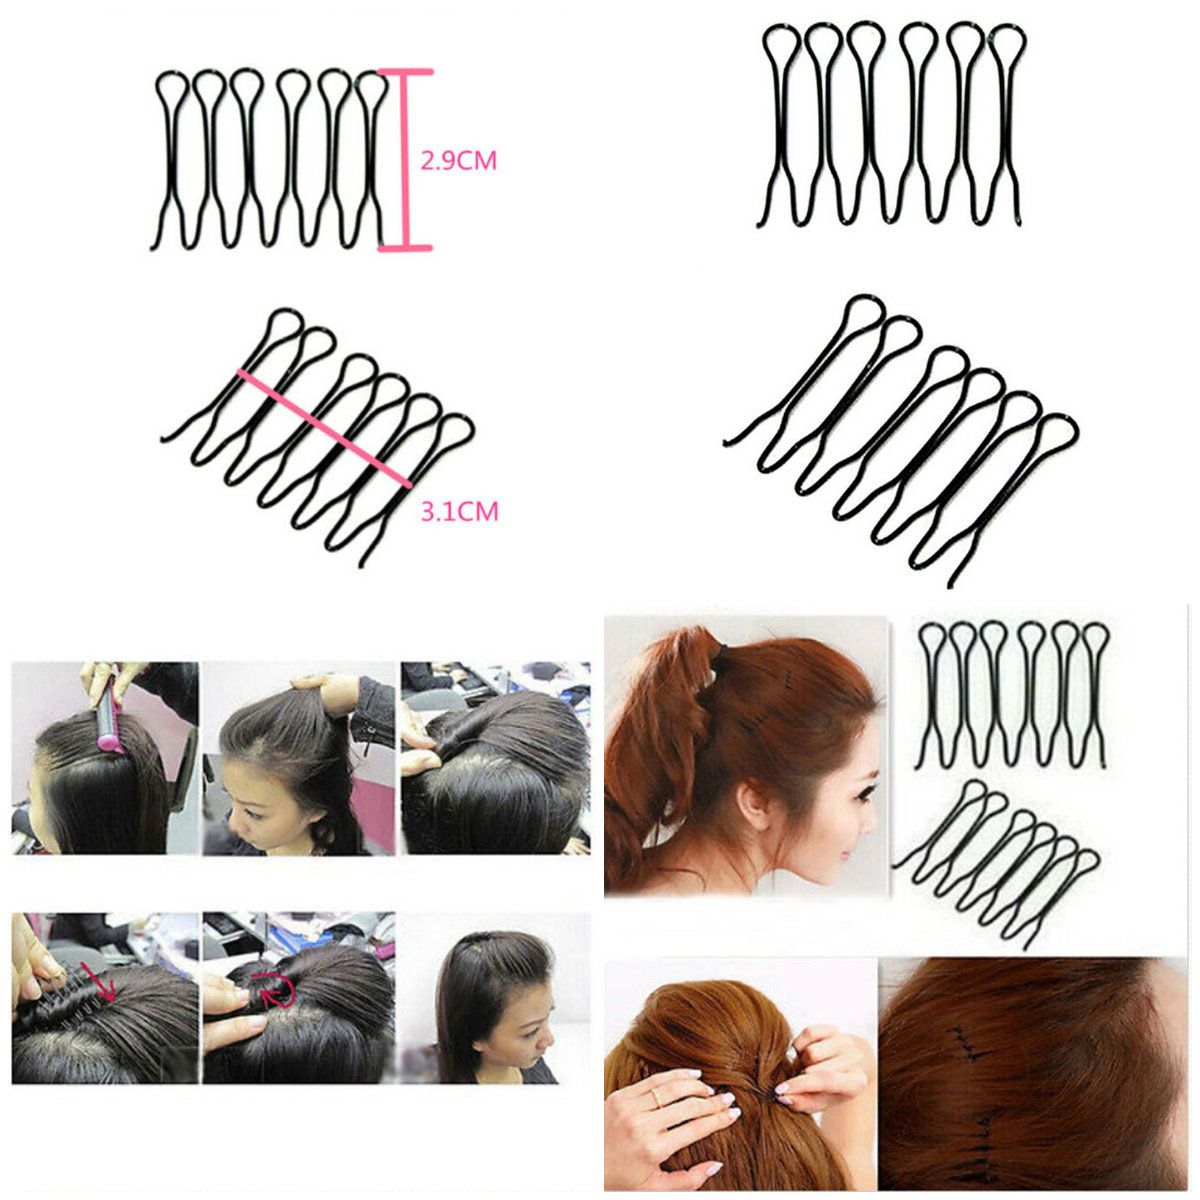 Styling Accessories Devoted 1x Hair Styling Accessories Randomly Color Plastic Salon Haircut Face Mask Hairspray Perfume Mask Shield Eyes Face Protector